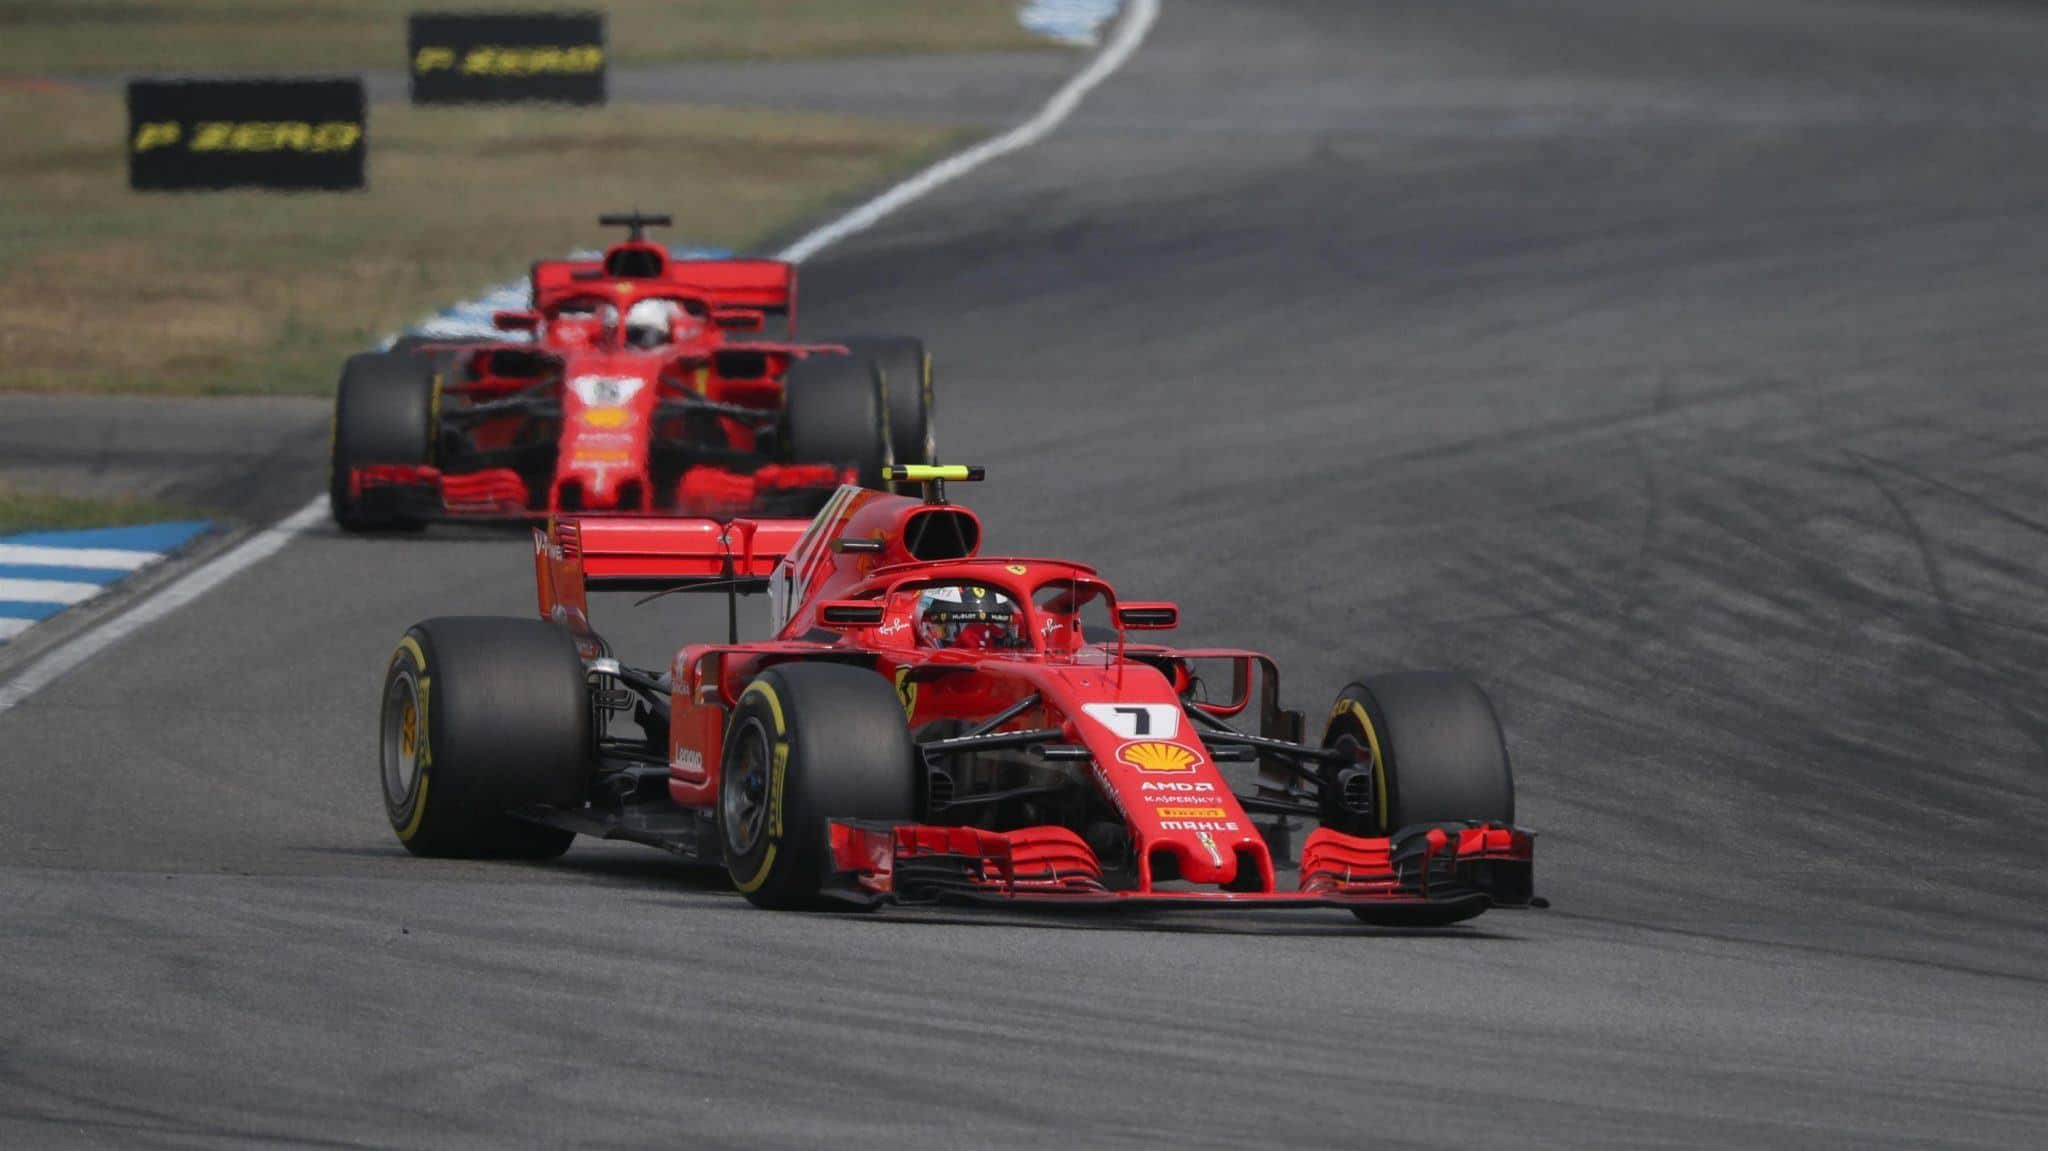 Raikkonen leads Vettel German GP F1 2018 Photo F1 Ferrari